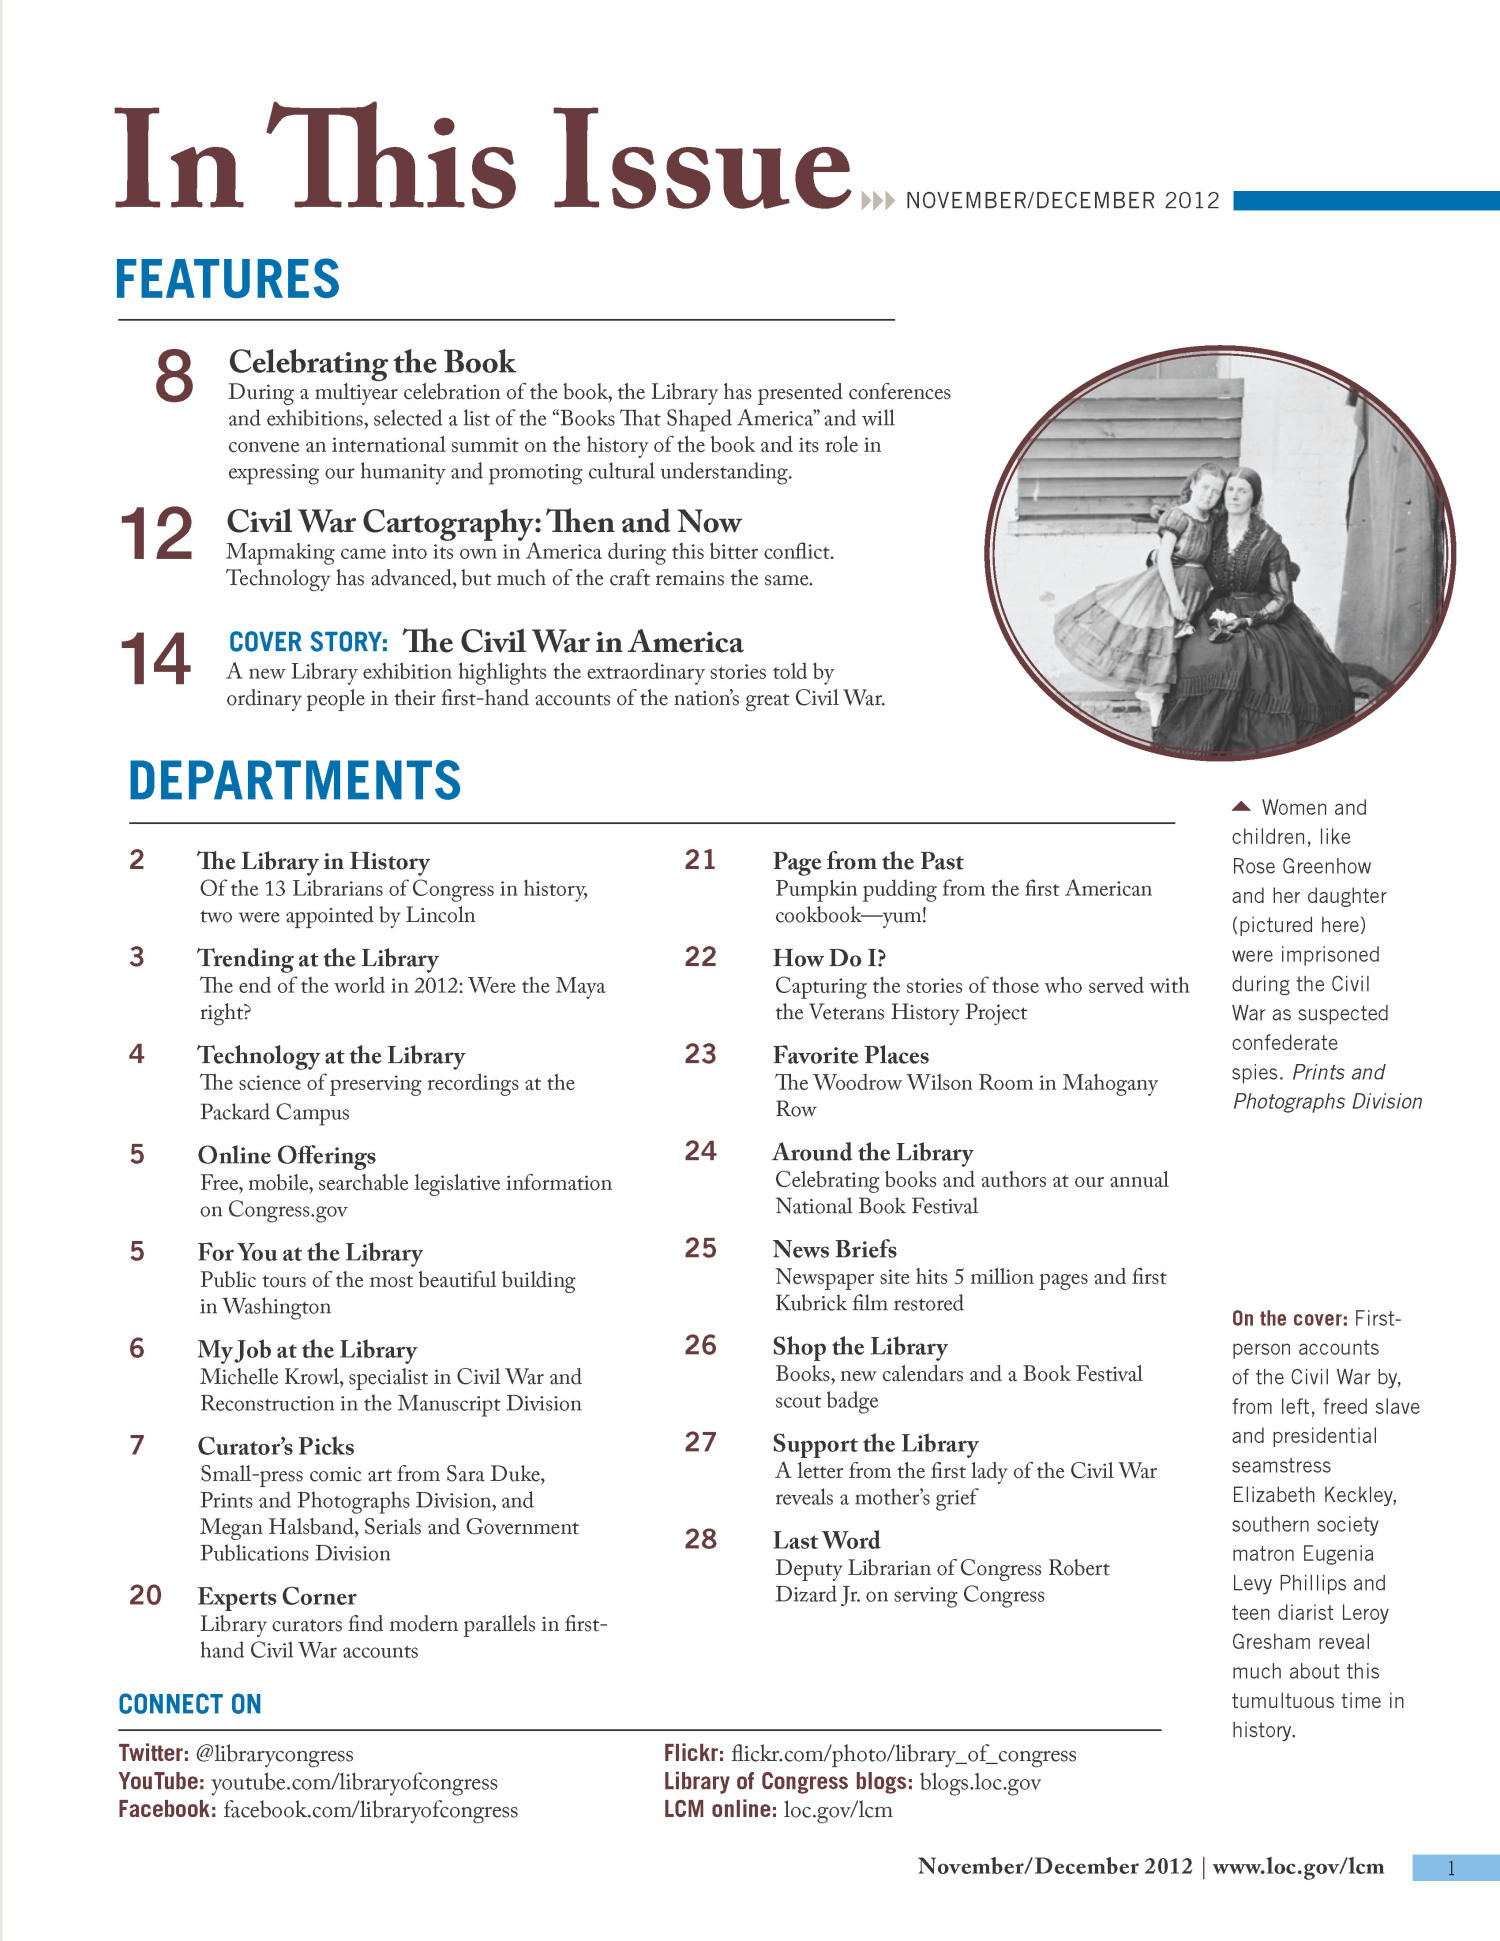 Library of Congress Magazine (LCM), Vol. 1 No. 2: November-December 2012                                                                                                      1